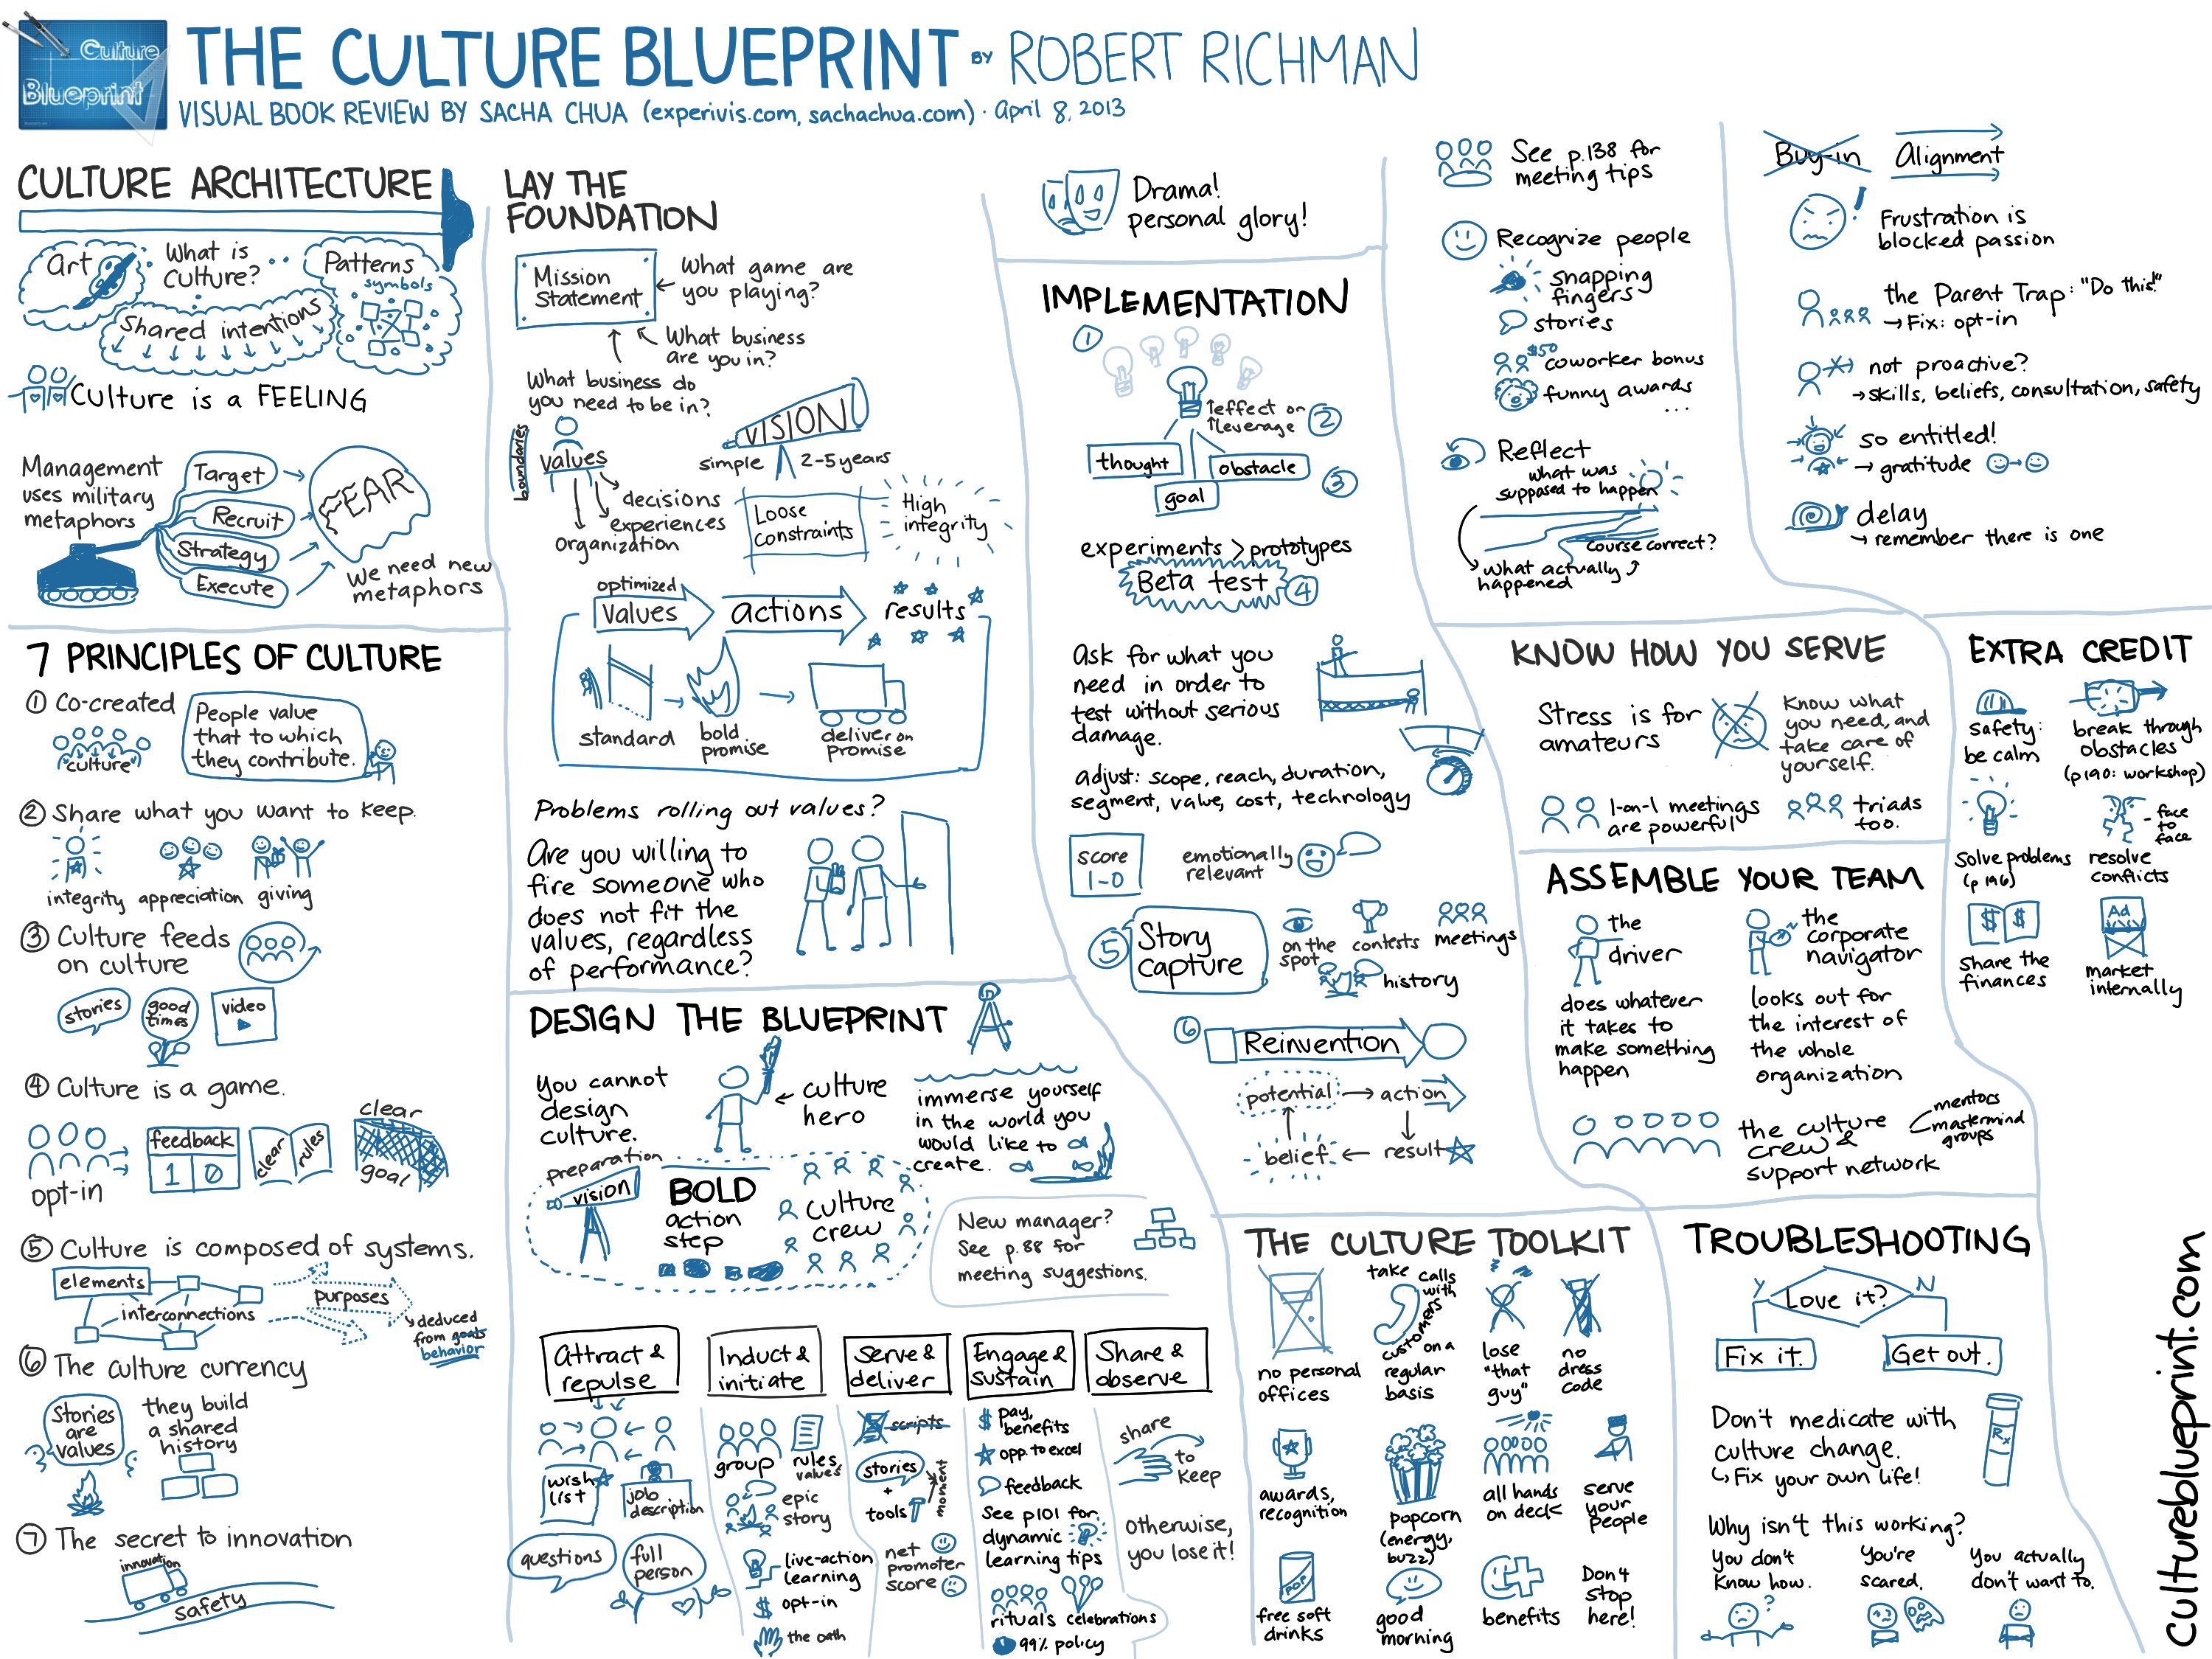 20130408 visual book review the culture blueprint robert richman 20130408 visual book review the culture blueprint robert richman malvernweather Gallery